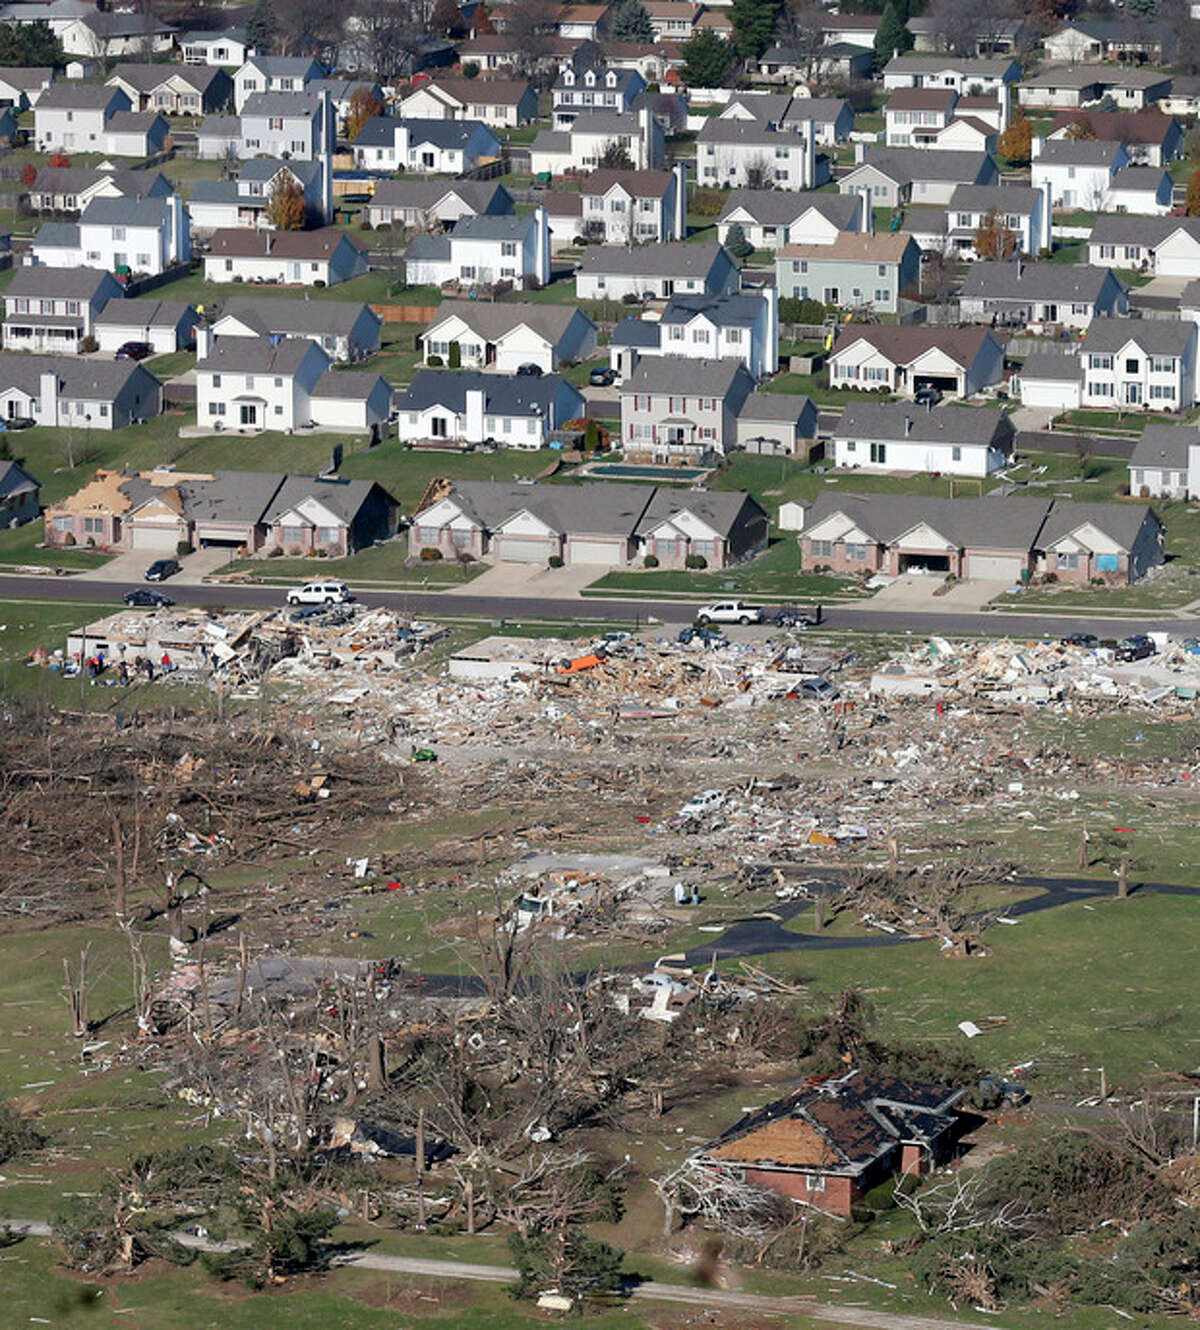 This aerial view on Monday, Nov. 18, 2013, shows untouched homes and homes destroyed by a tornado that hit the western Illinois town of Washington on Sunday. It was one of the worst-hit areas after intense storms and tornadoes swept through Illinois. The National Weather Service says the tornado that hit Washington had a preliminary rating of EF-4, meaning wind speeds of 170 mph to 190 mph. (AP Photo/Charles Rex Arbogast)